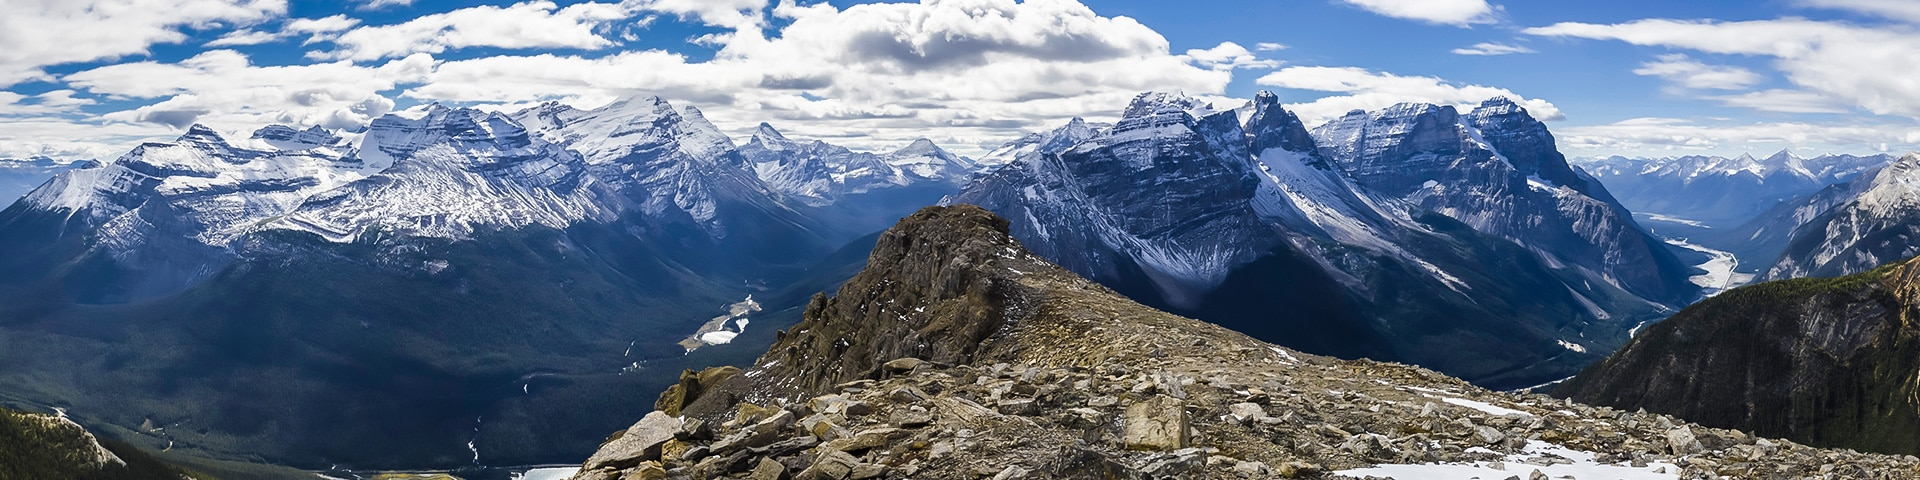 Panorama from Paget Peak scramble in Banff National Park